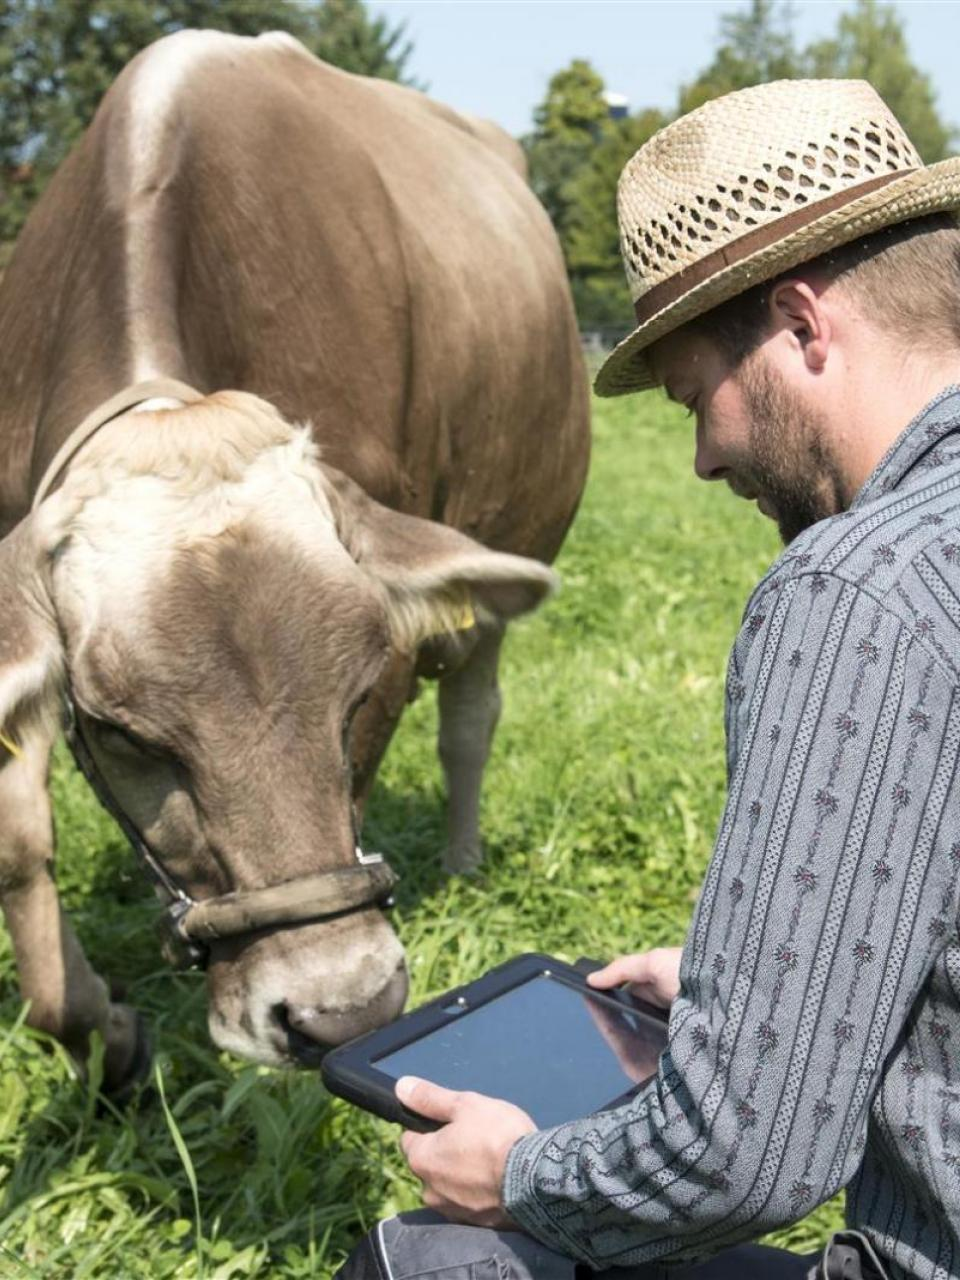 Data provided by the pedometer attached to the halter enables the behaviour of cows to be monitored on a tablet. ©Agroscope, Gabriela Brändle